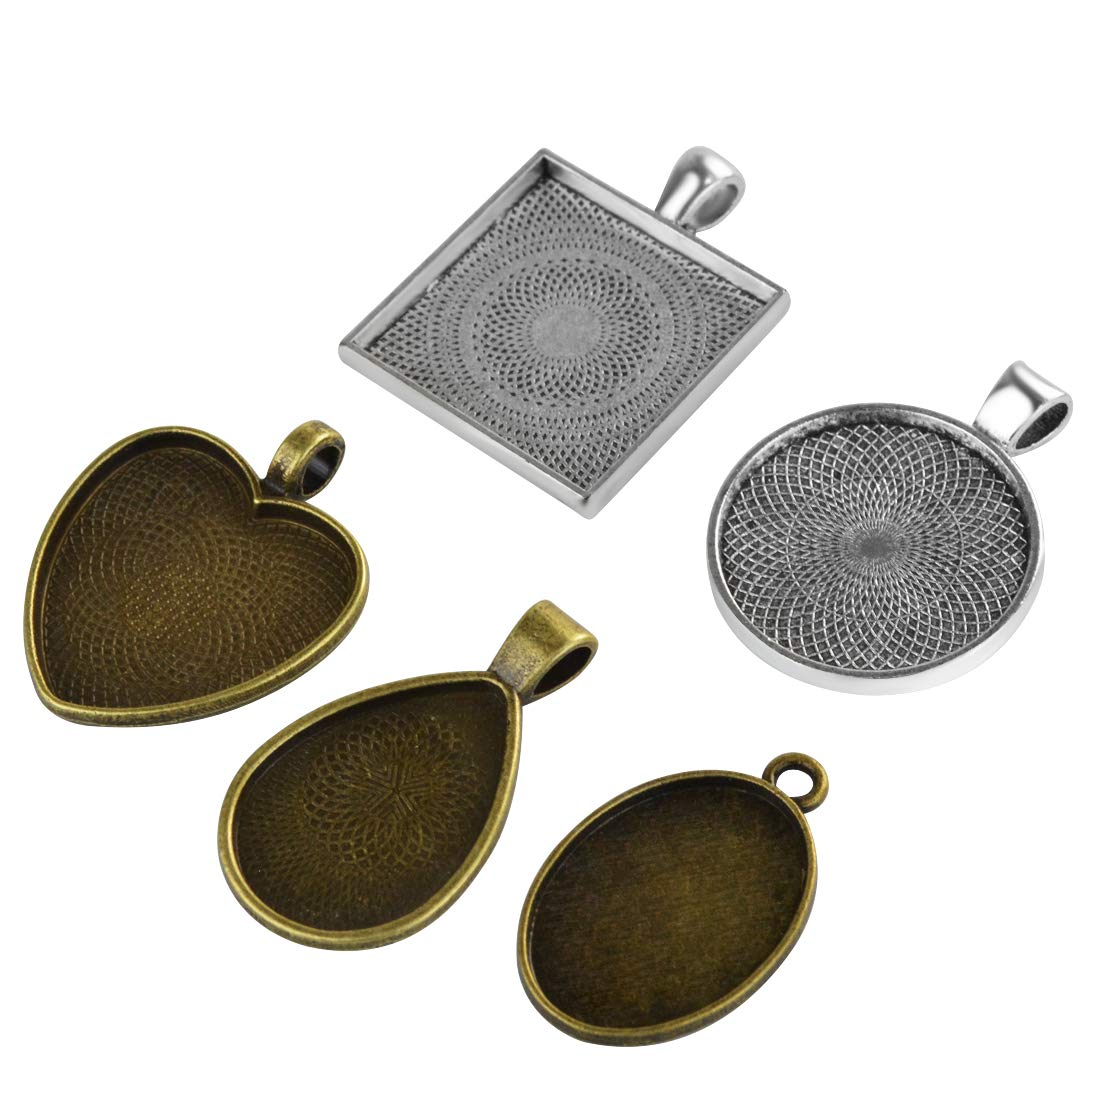 Yolyoo 40-Pieces 5 Styles Pendant Trays - Round & Square & Heart & Teardrop & Oval for Crafting DIY Jewelry Gift Making